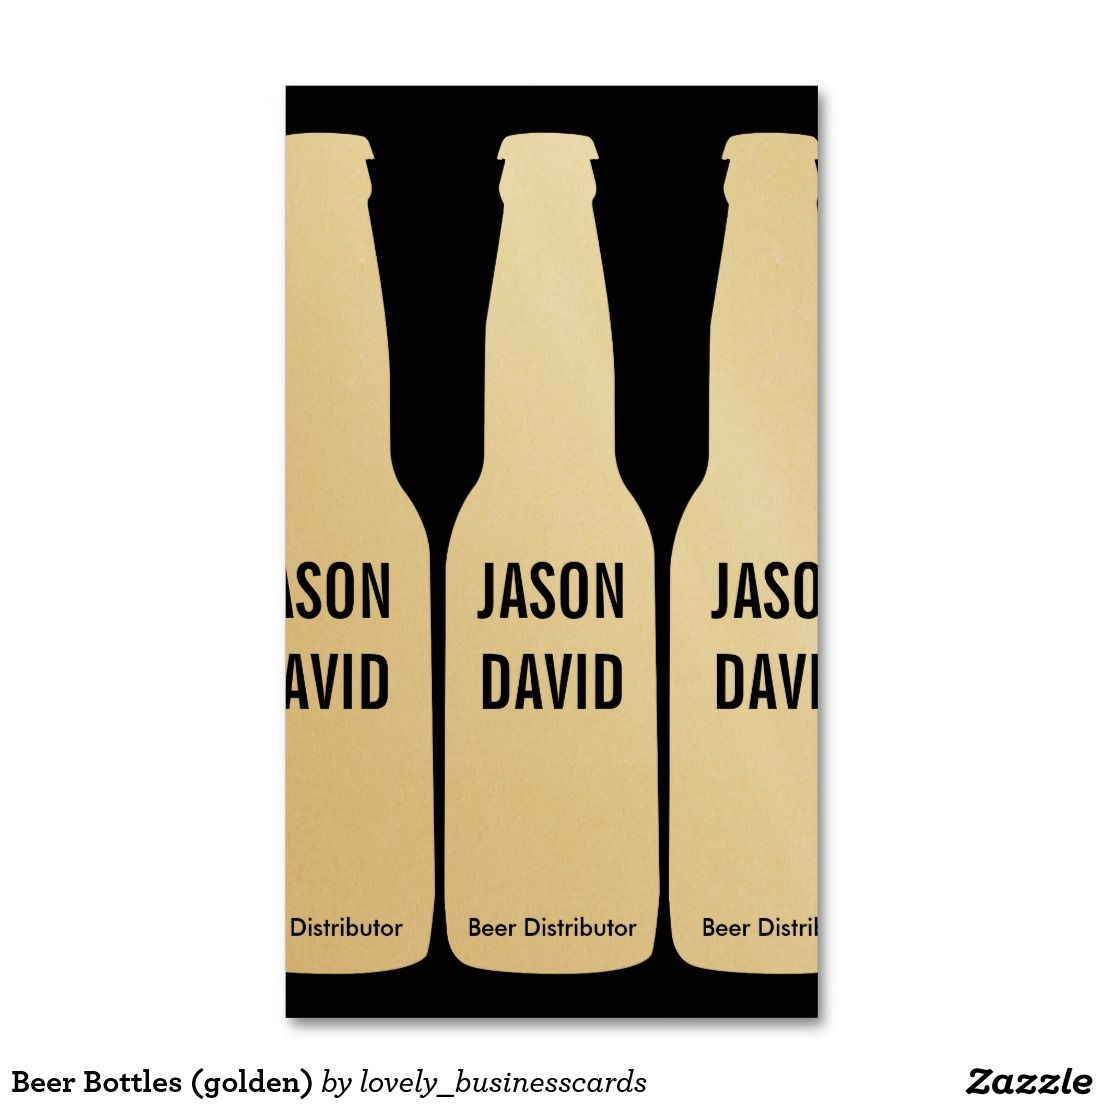 Beer Bottles (golden) Business Card | Beer bottles, Business cards ...